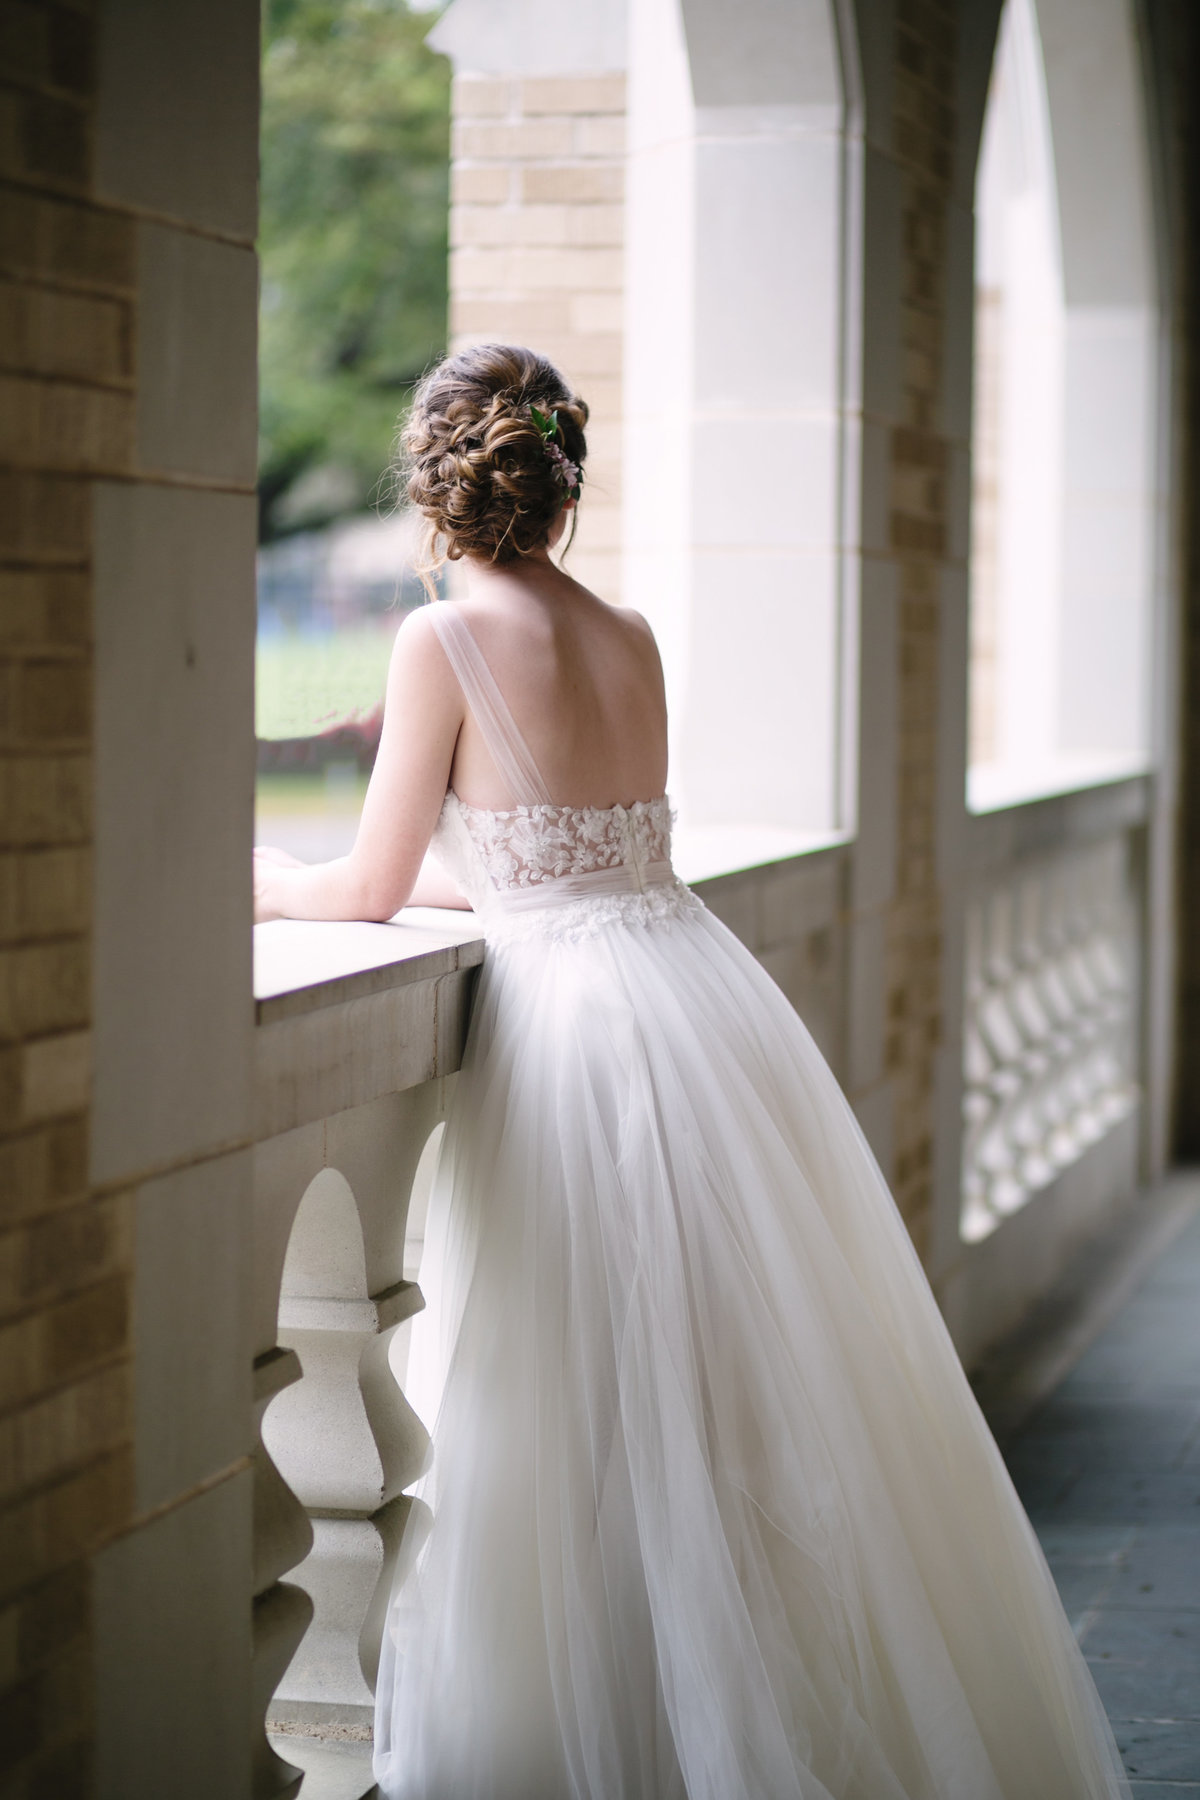 Brooke_Bridal_Session_By_Julia_Sharapova_Dallas_Wedding_Photographer-30